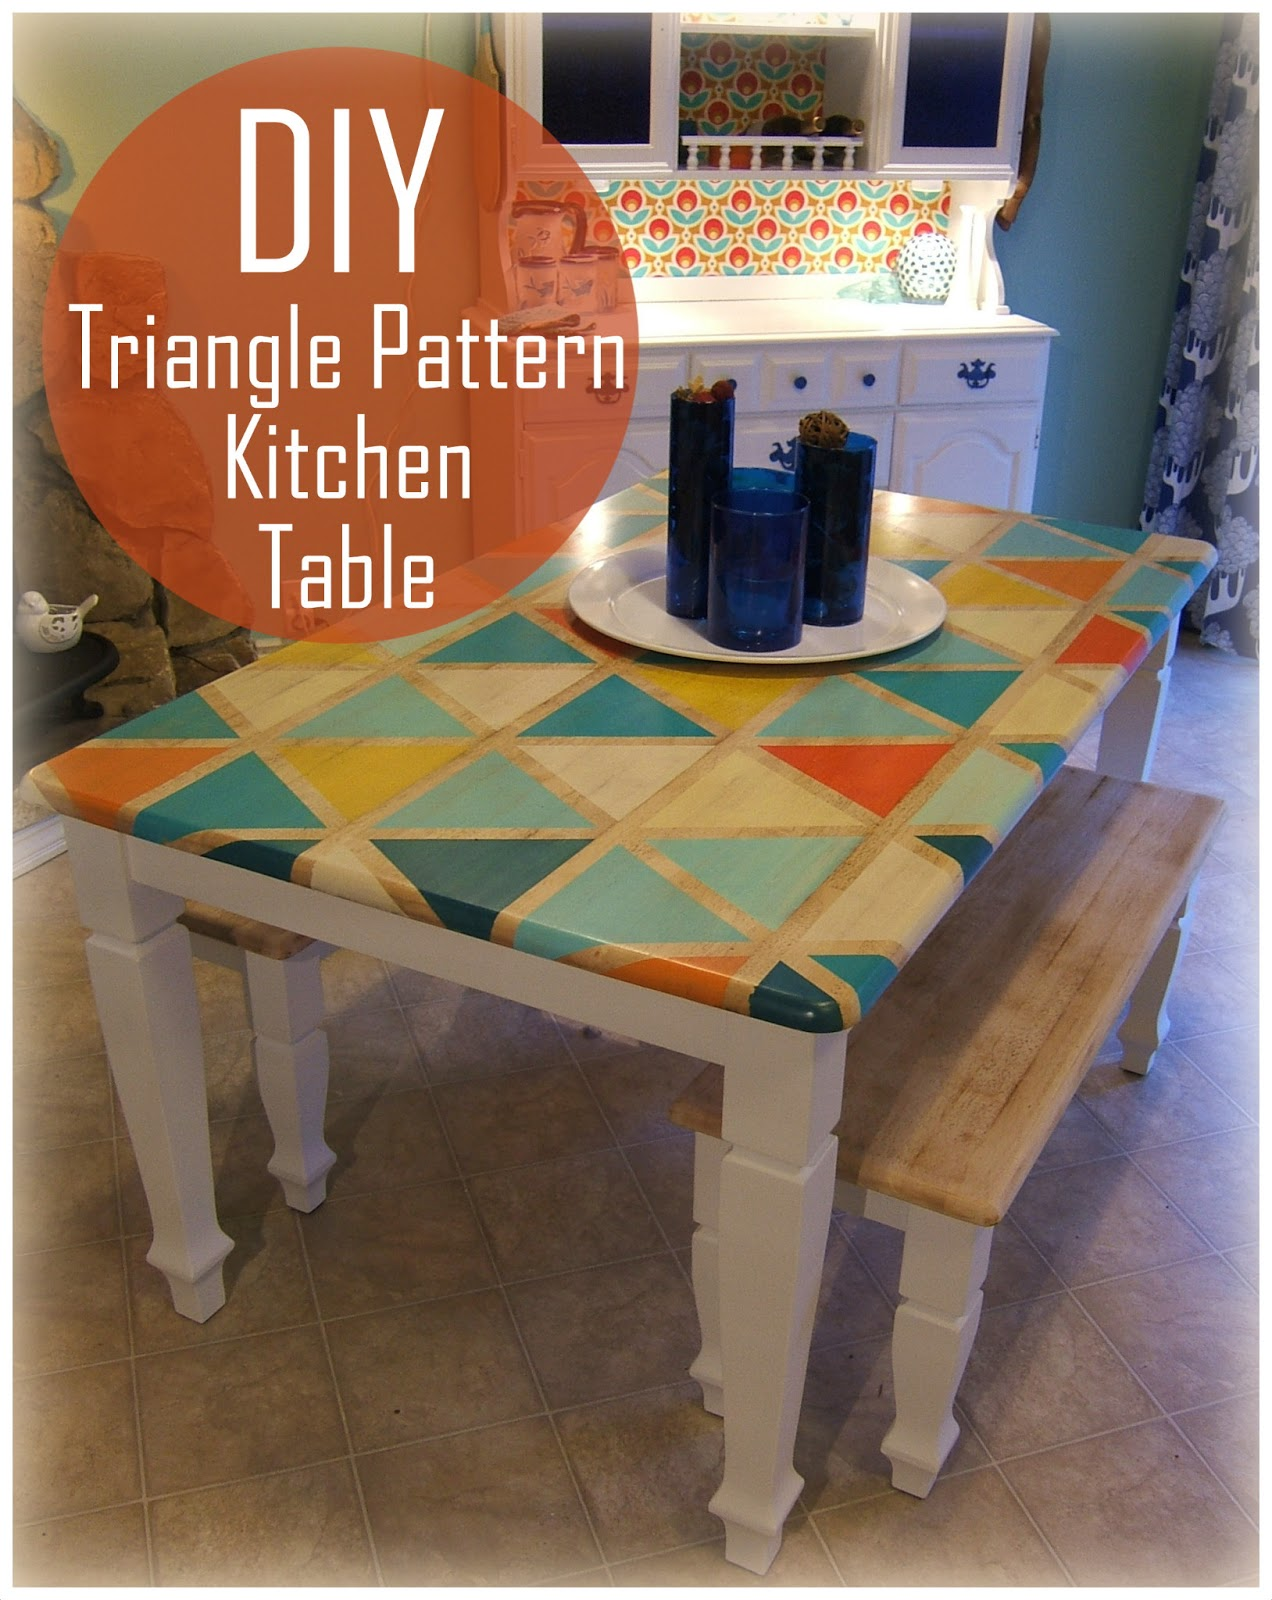 how to diy triangle pattern kitchen painting kitchen table How To DIY Triangle Pattern Kitchen Tabletop